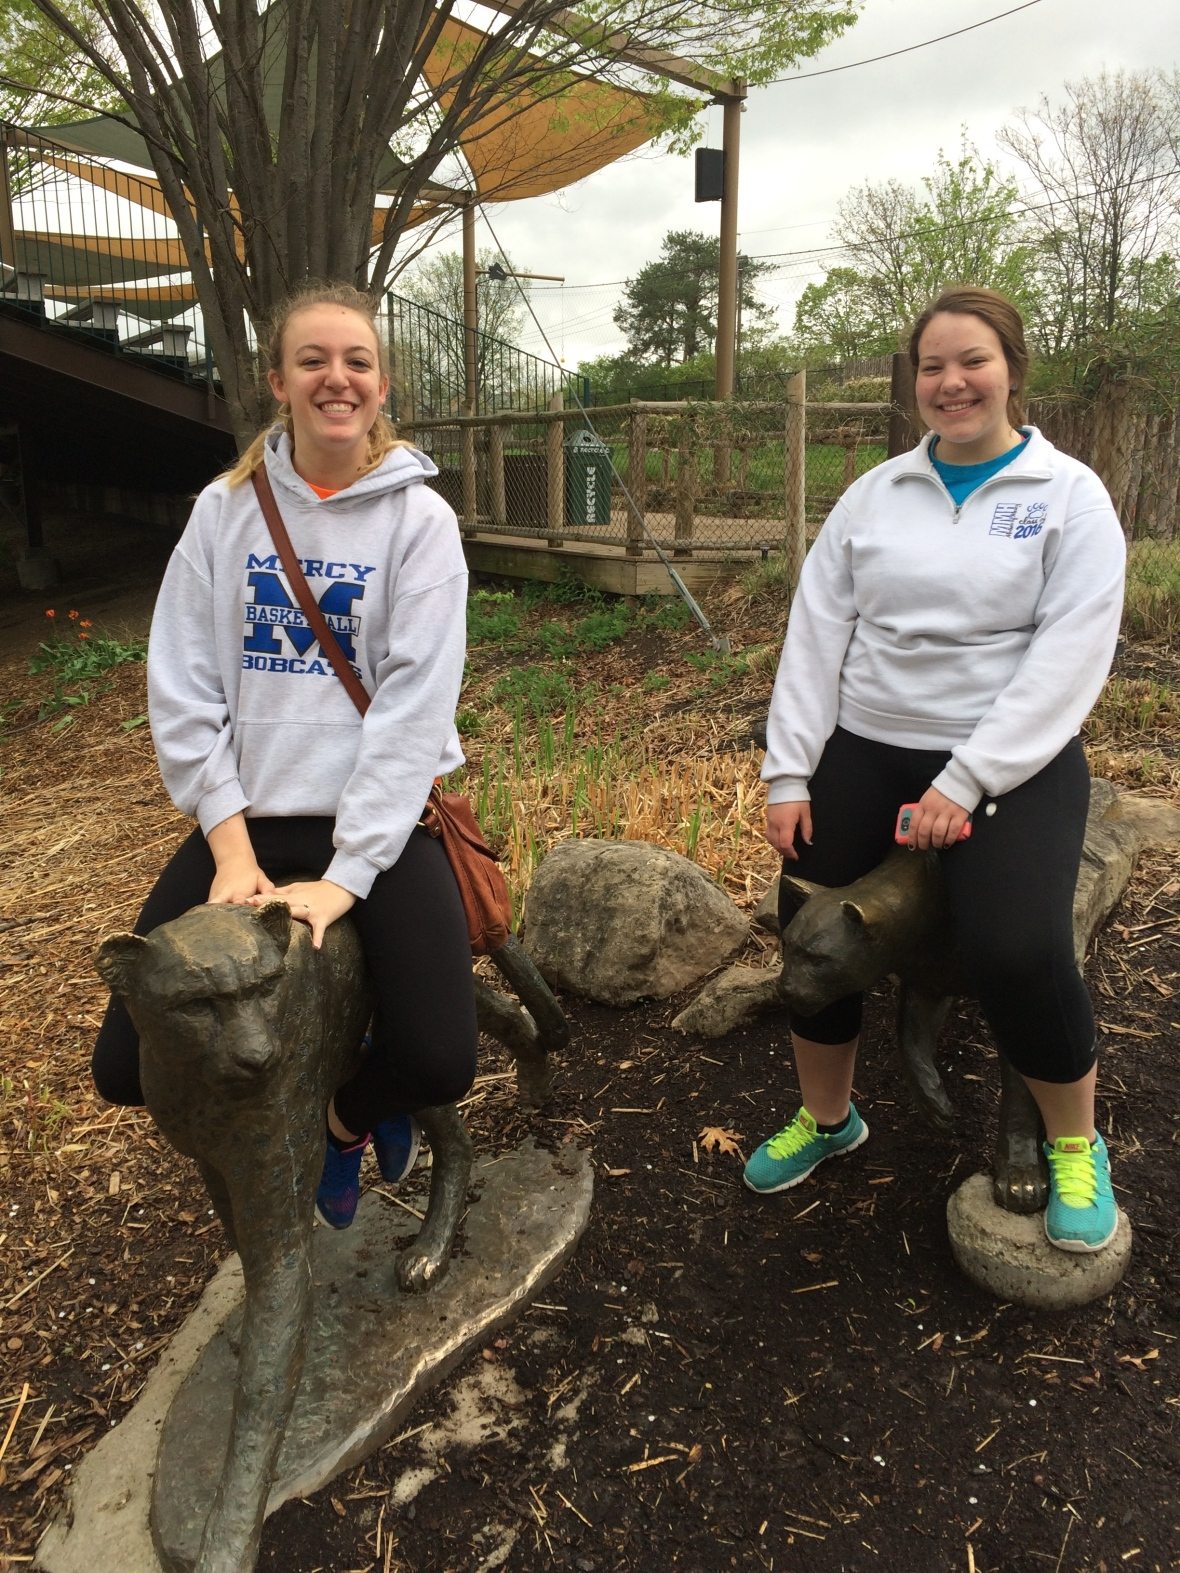 Emma and Erin '16 take a ride on the world's fastest land animal!